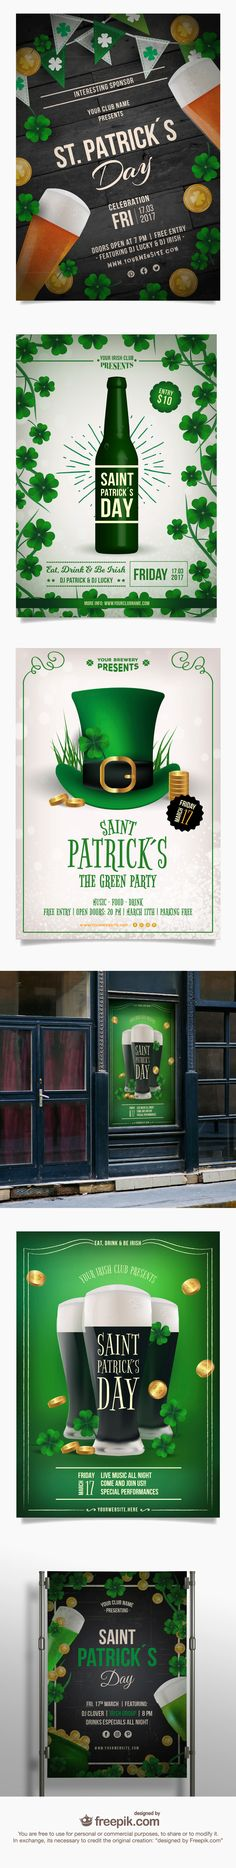 FREE Ready-To-Print Posters For St. Patrick's Day